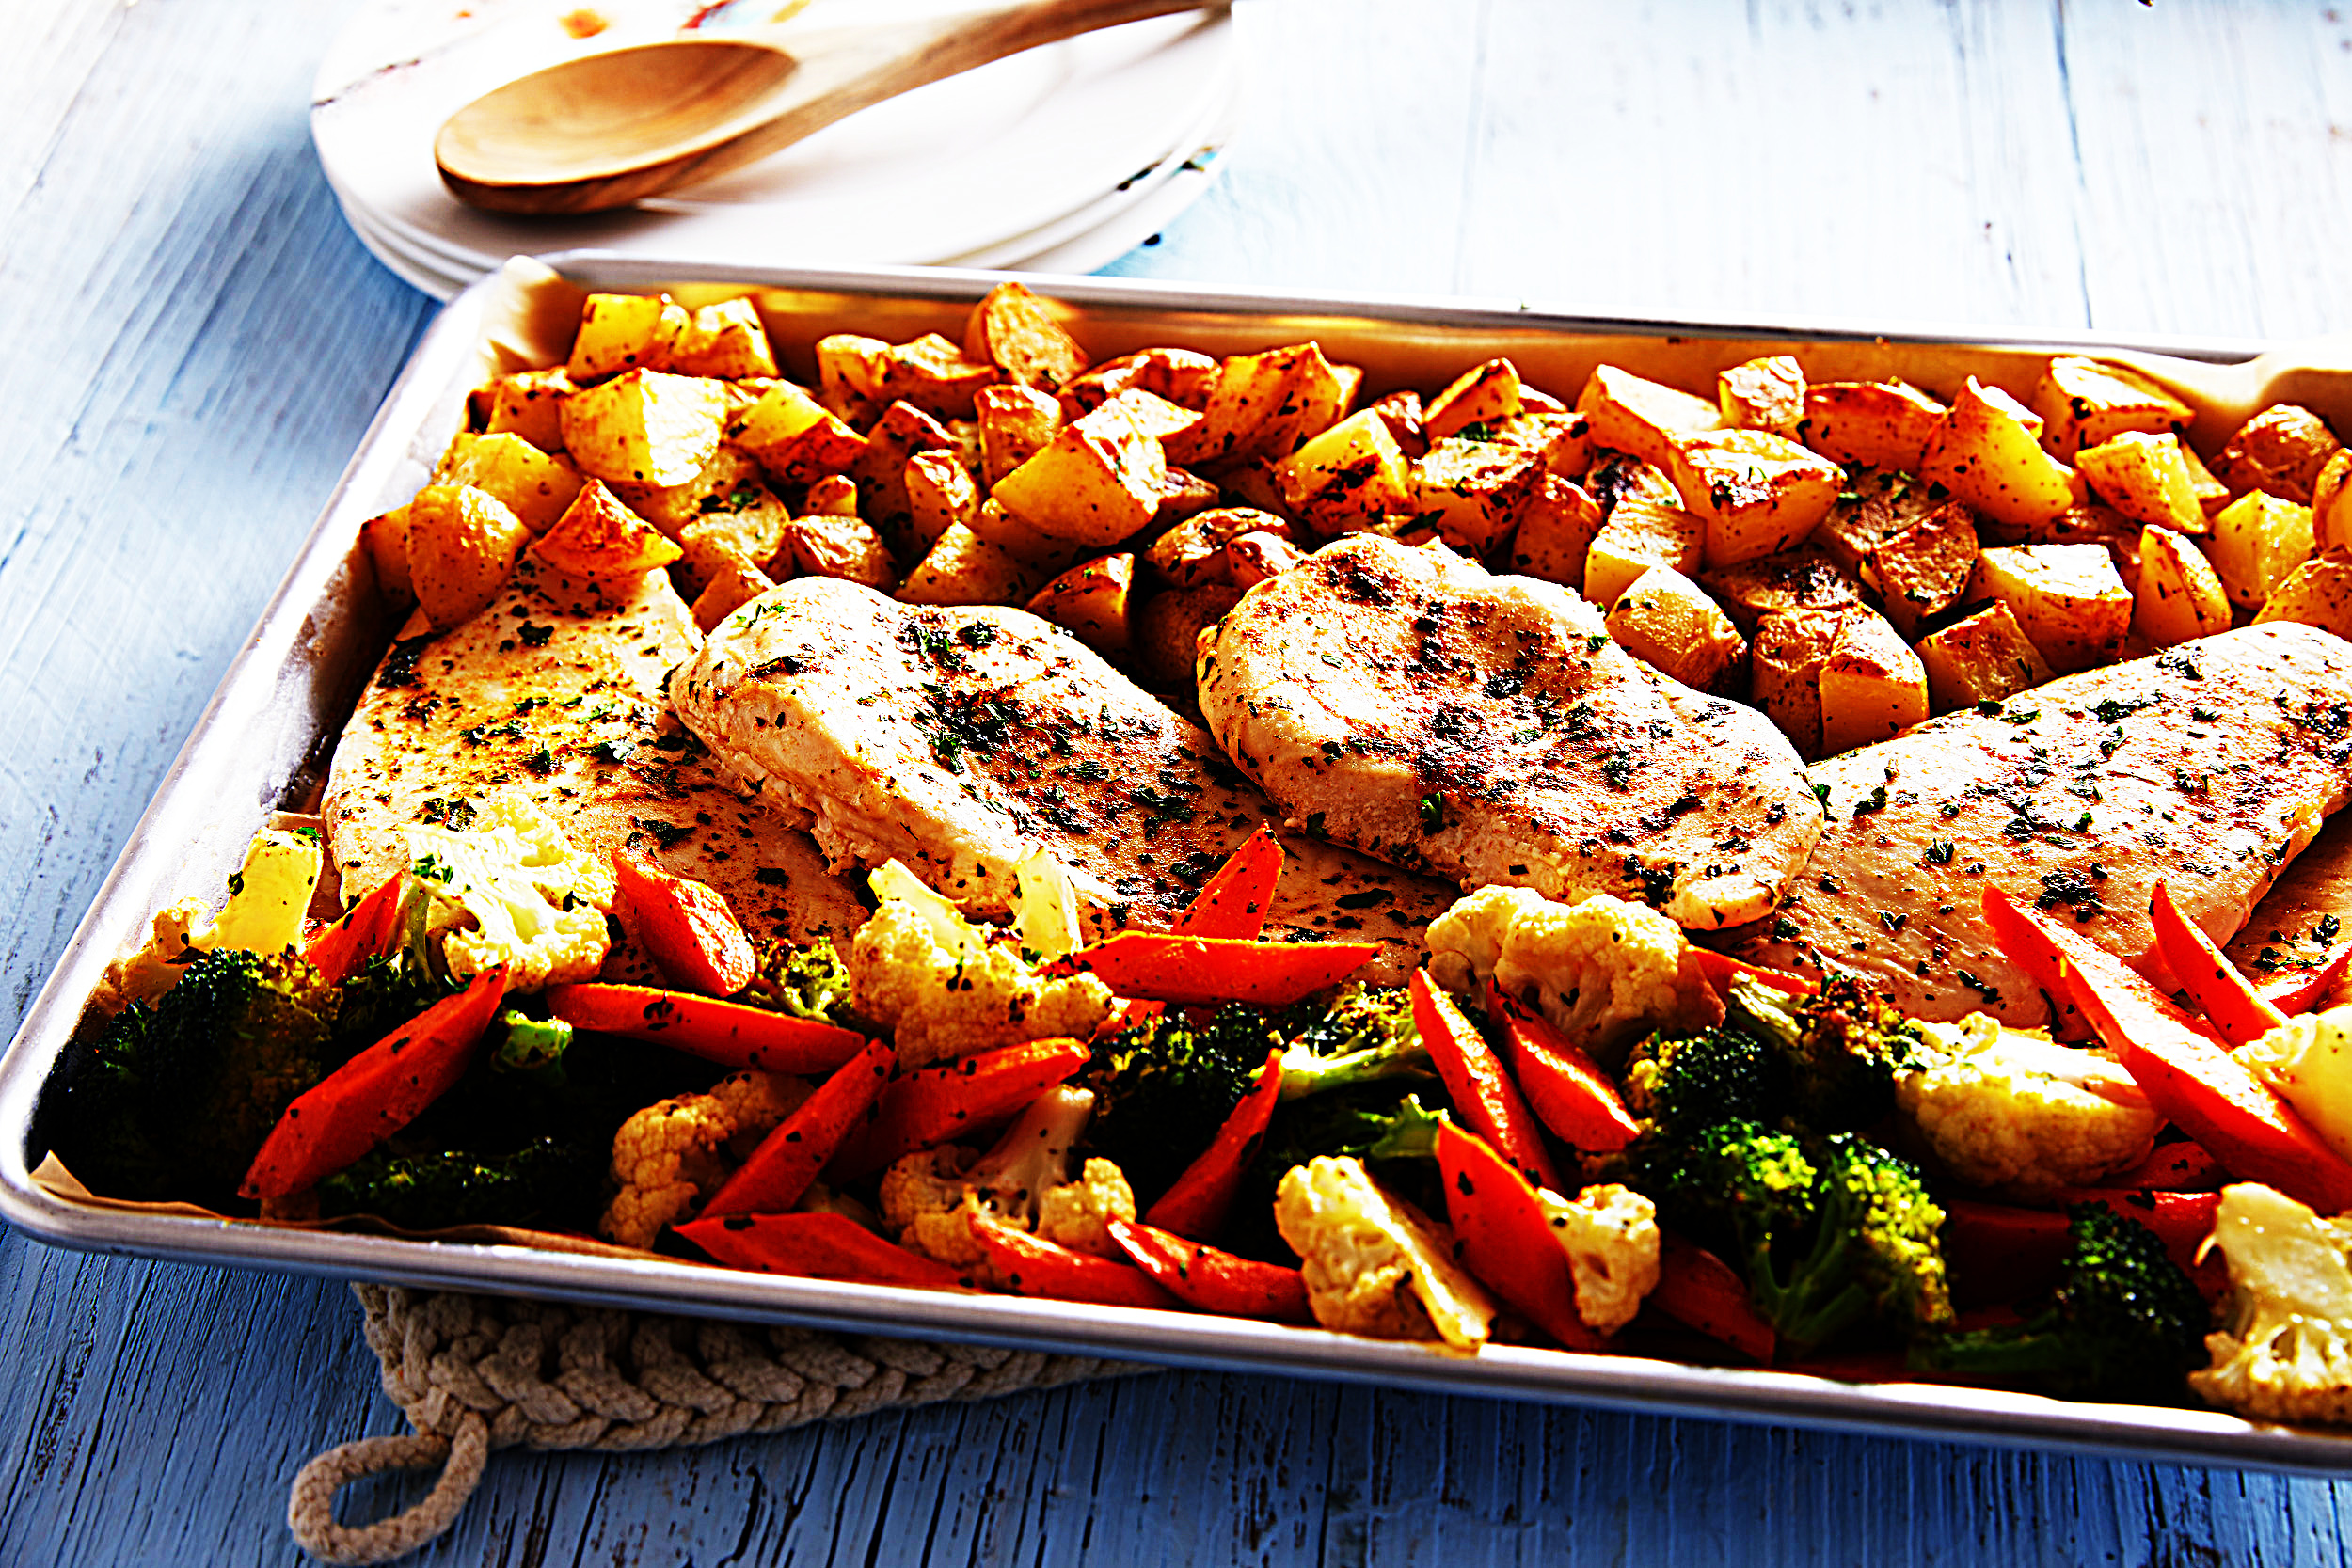 Stupid-Easy Recipe for Easy Sheet Pan Chicken and Veggies (#1 Top-Rated)